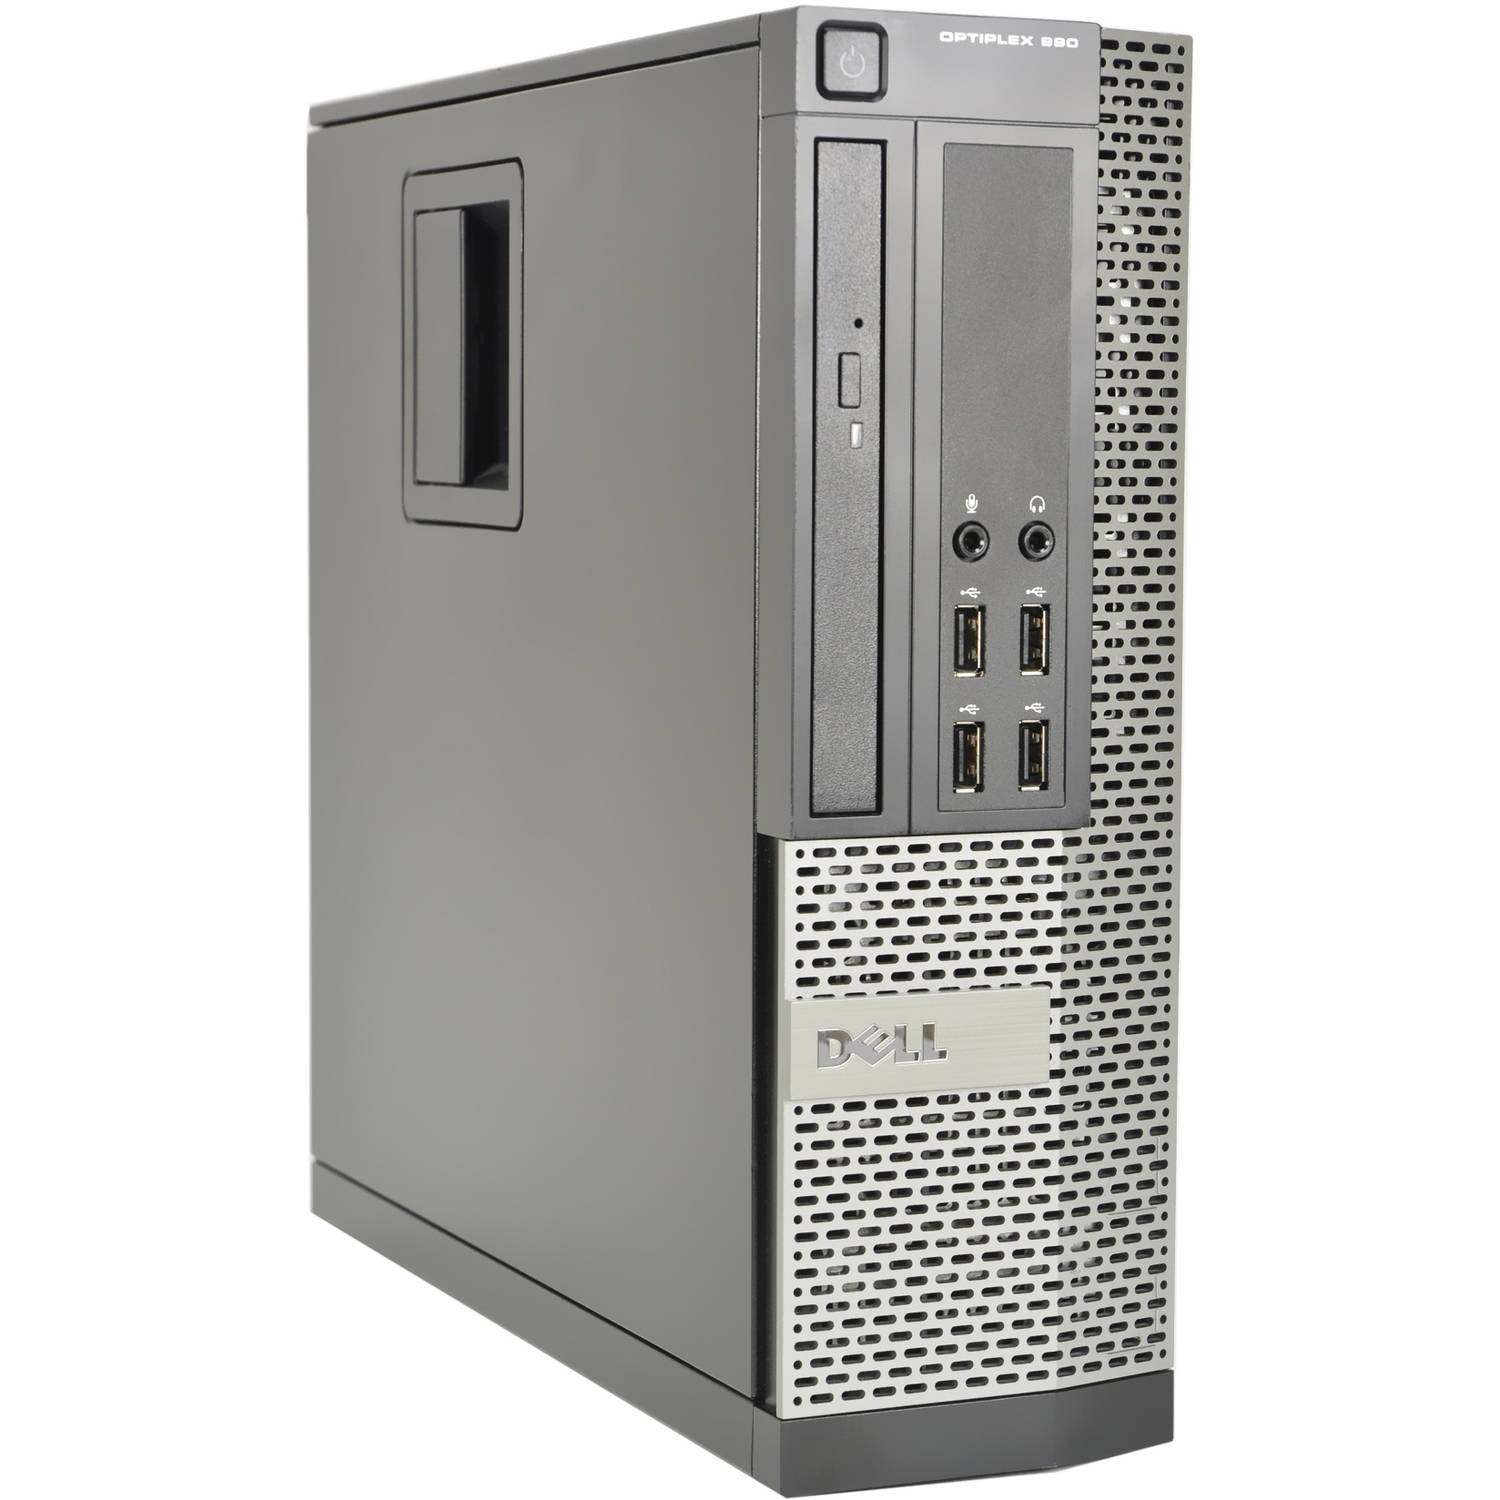 Refurbished Dell Optiplex 990-SFF WA1-0310 Desktop PC with Intel Core i5-2400 Processor, 4GB Memory, 250GB Hard Drive and Windows 10 Pro (Monitor Not Included)